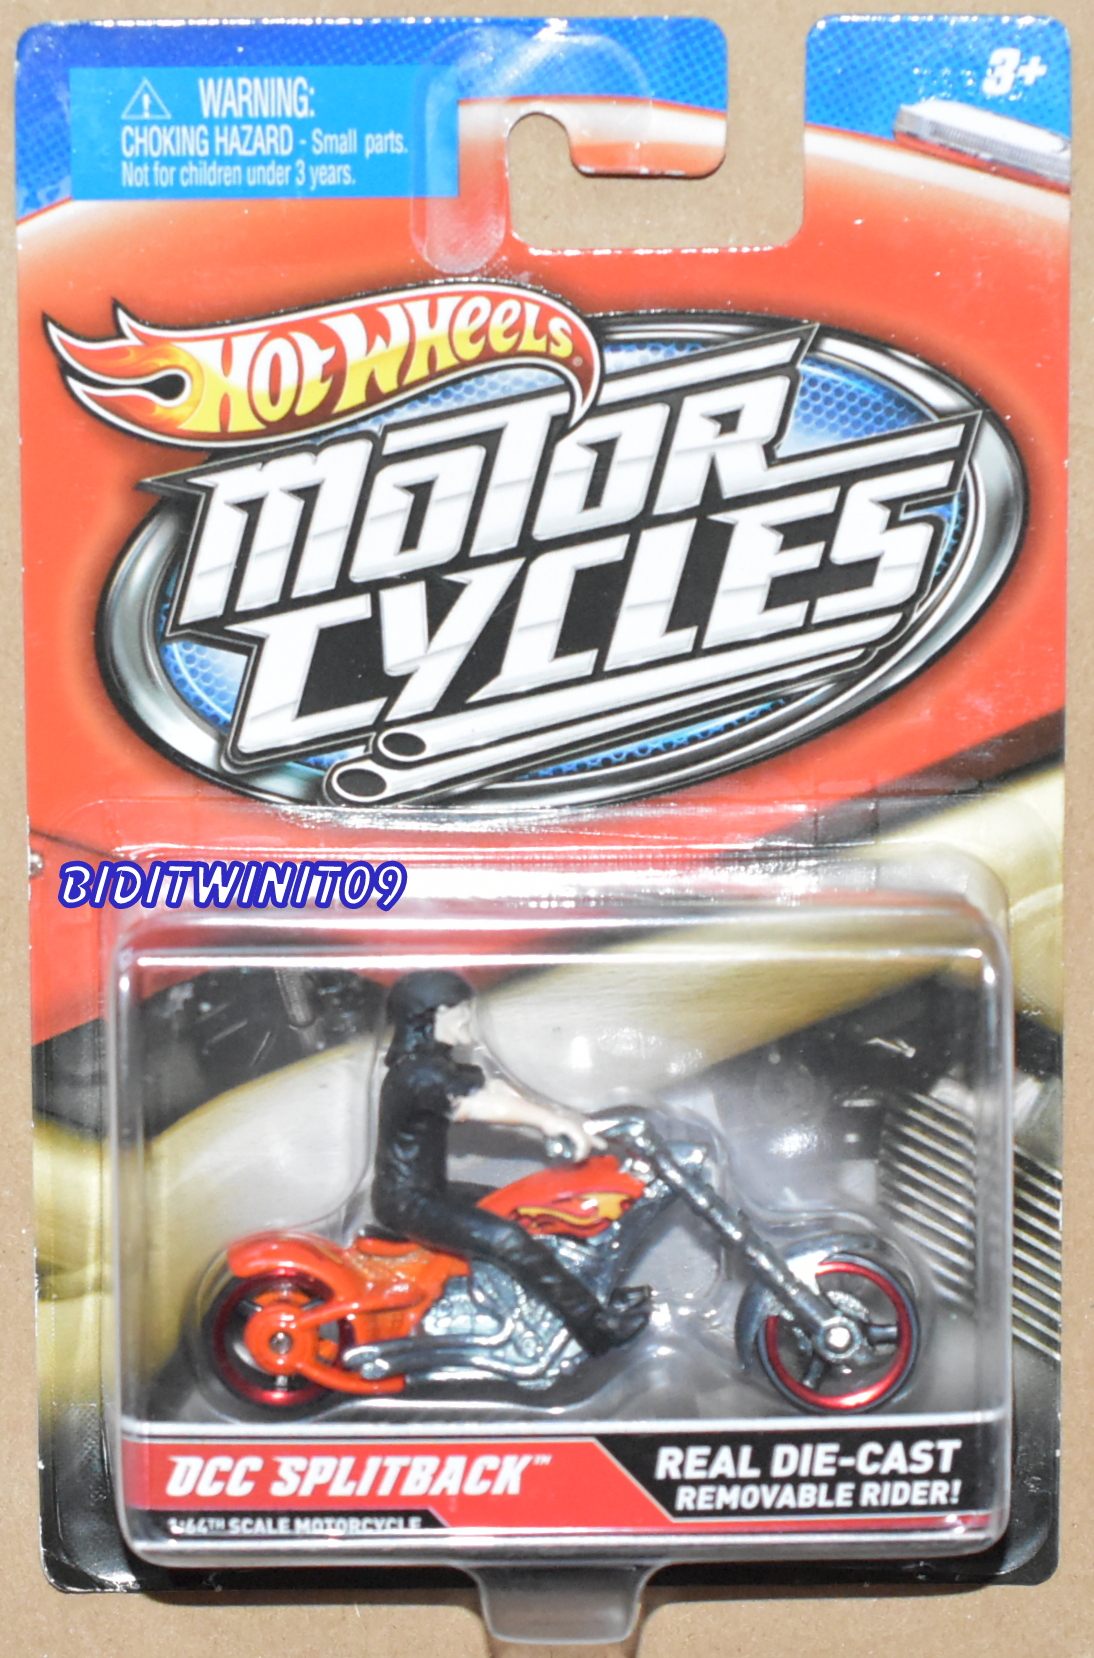 HOT WHEELS MOTOR CYCLES OCC SPLITBACK REAL DIE-CAST REMOVABLE RIDER